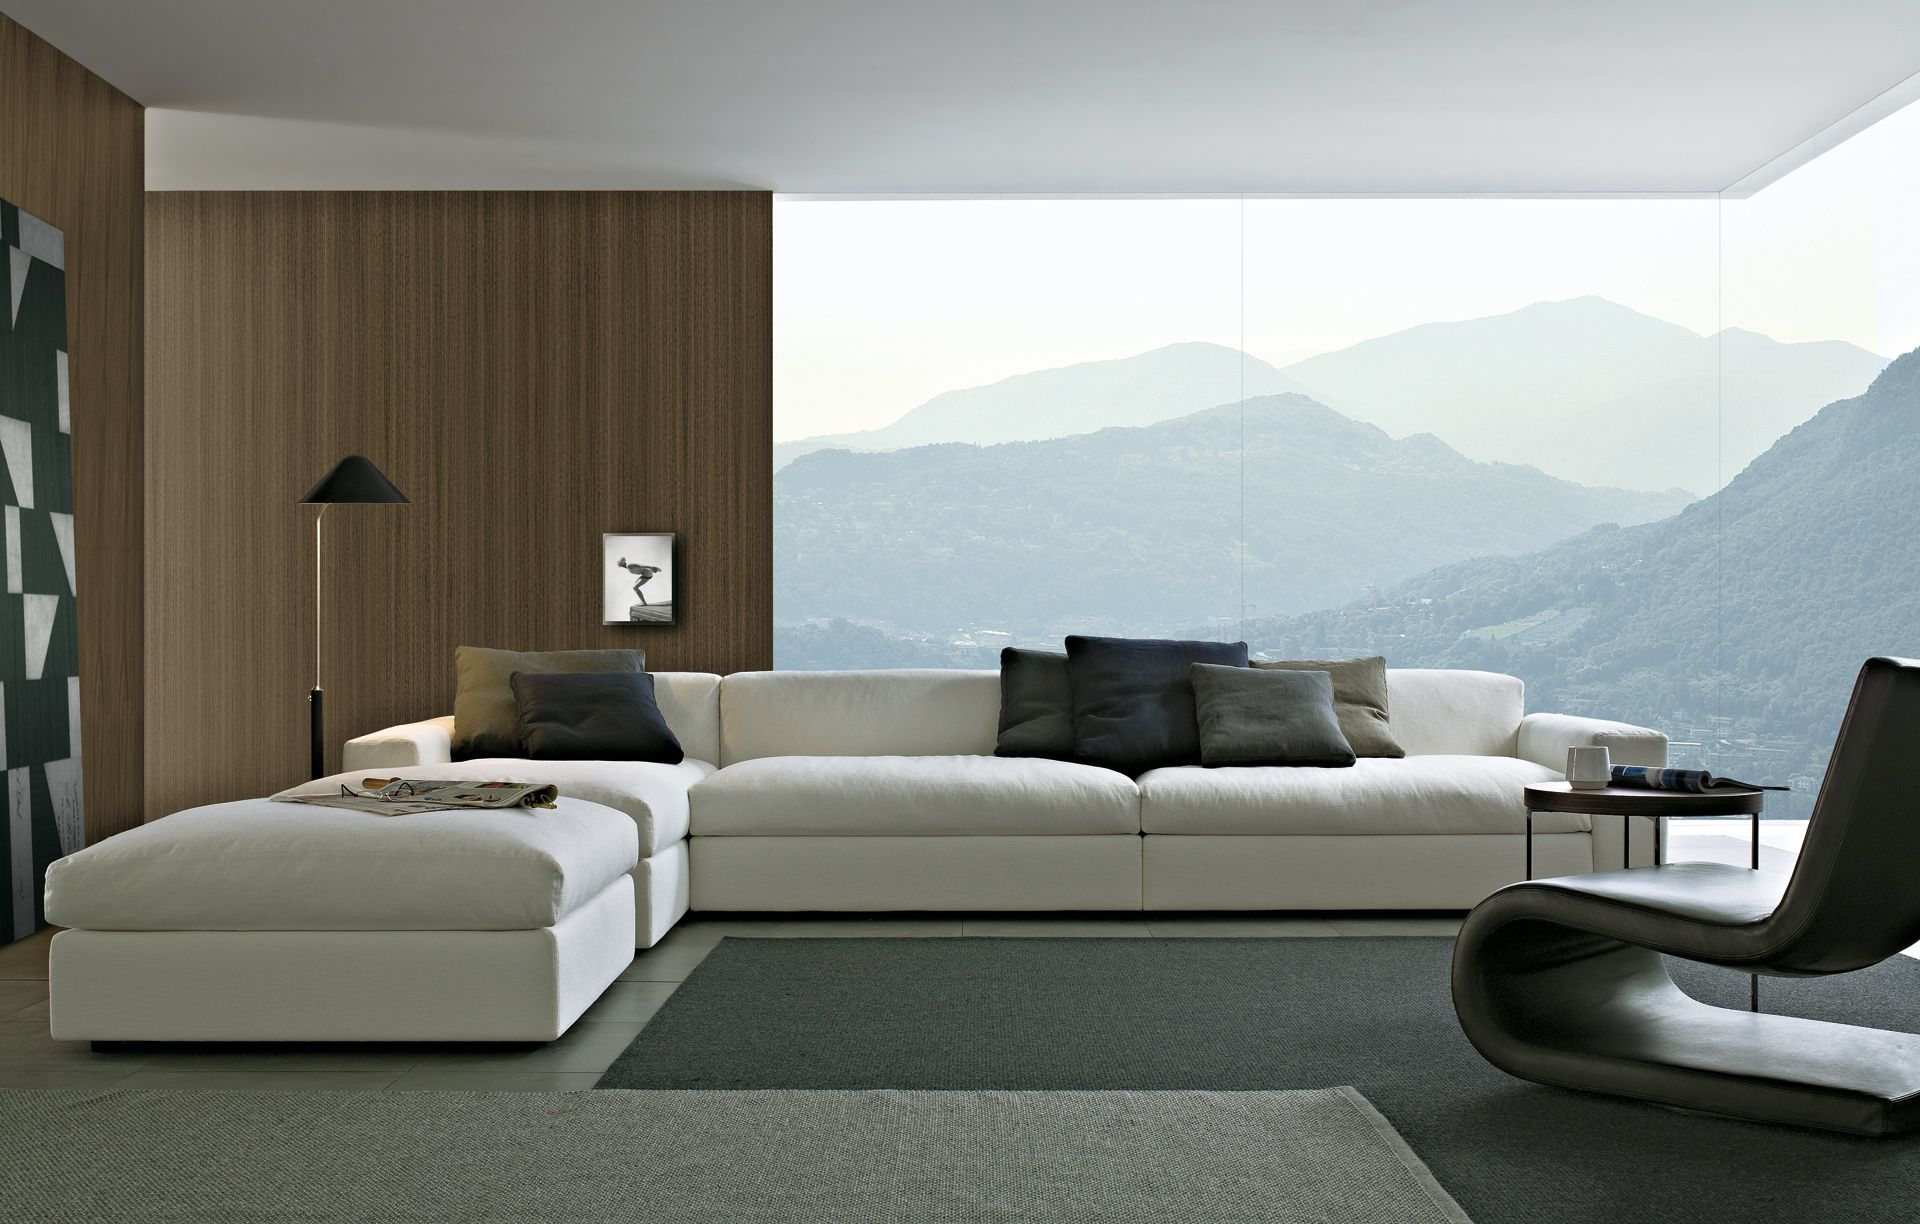 Showroom Canapé Paris Poliform Dune Sofa Love The Sofa But Look At Scenery Of